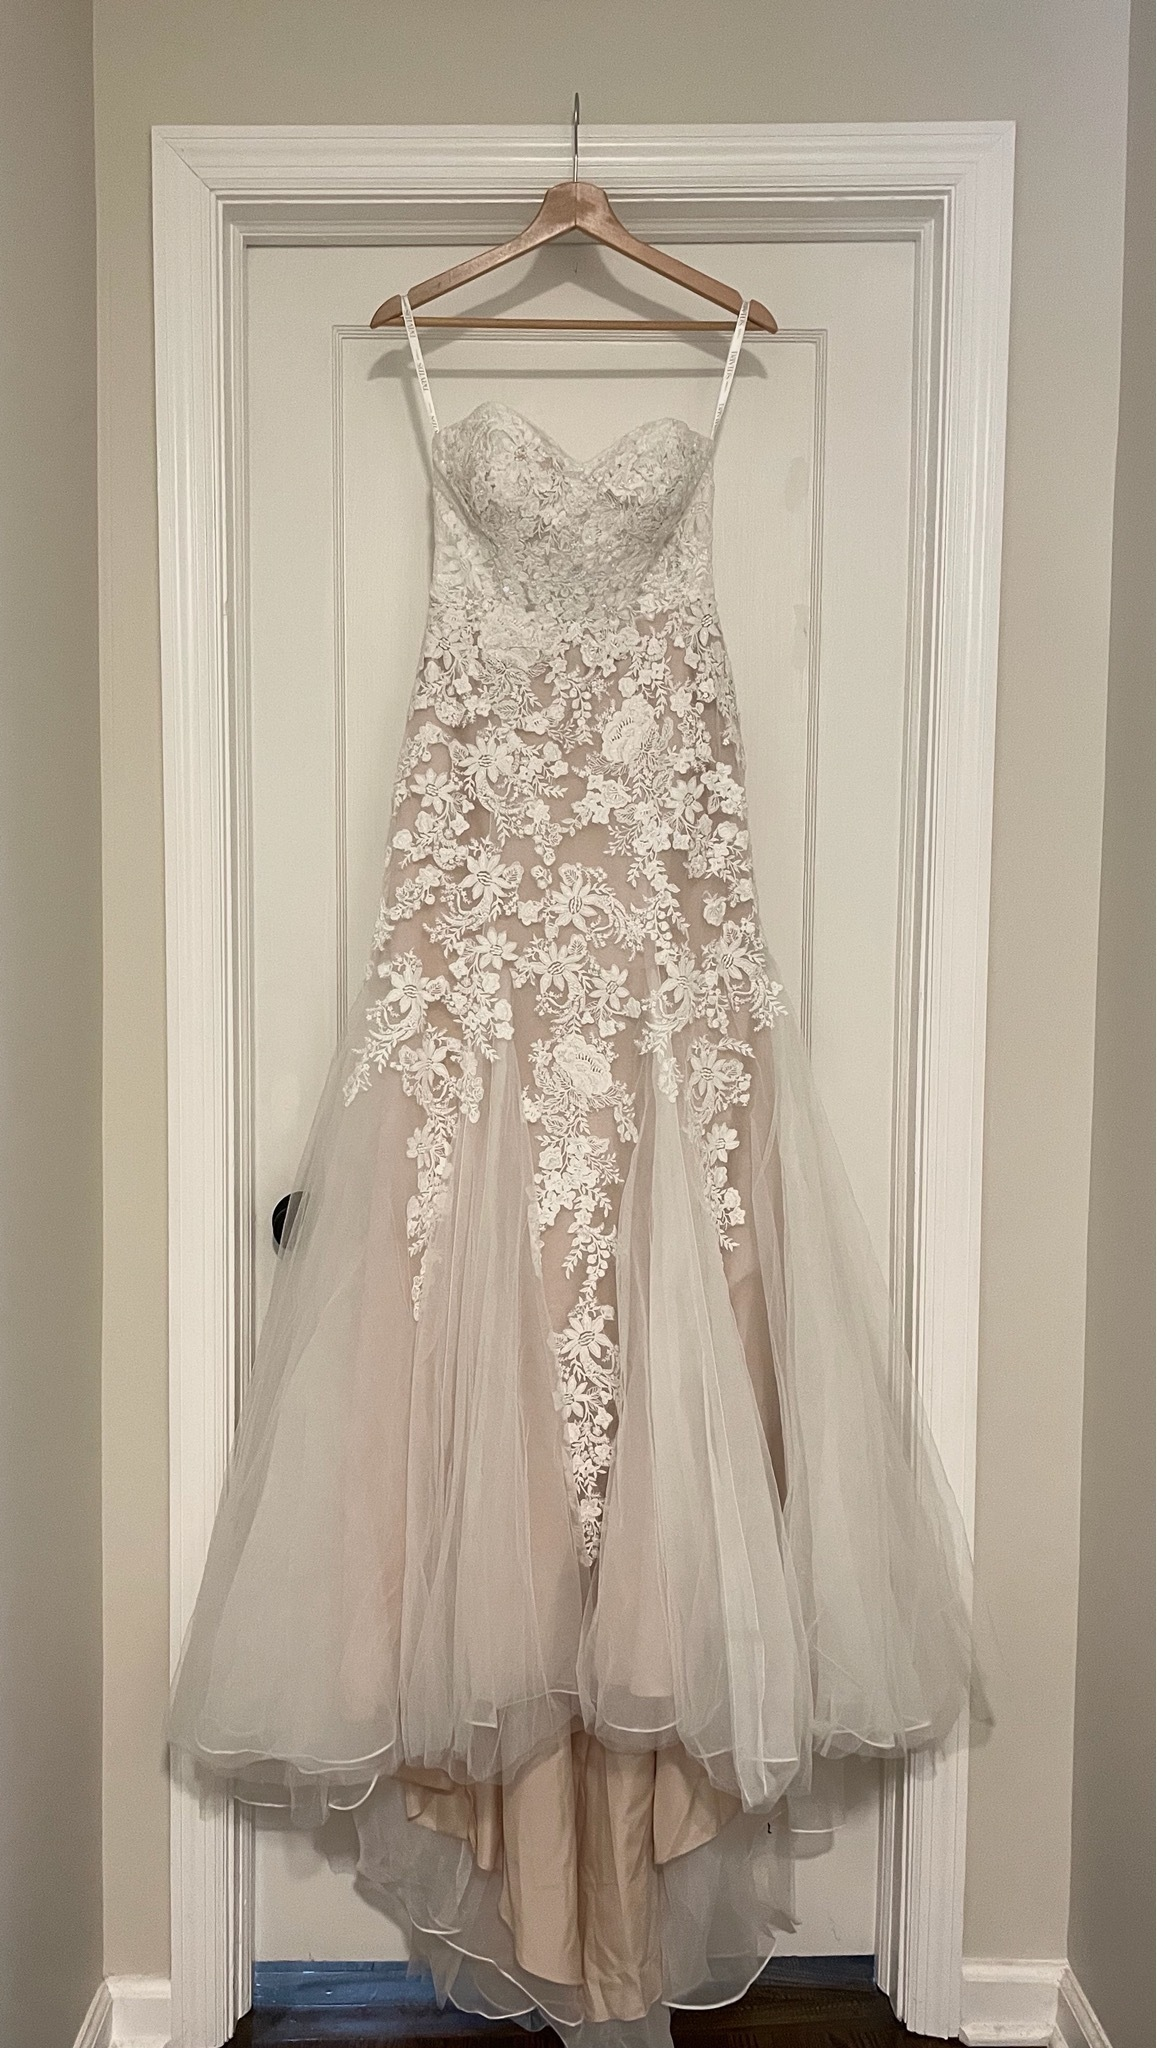 David's bridal - Floral beaded lace and tulle mermaid wedding dress size 2 - $599 - (33% OFF)